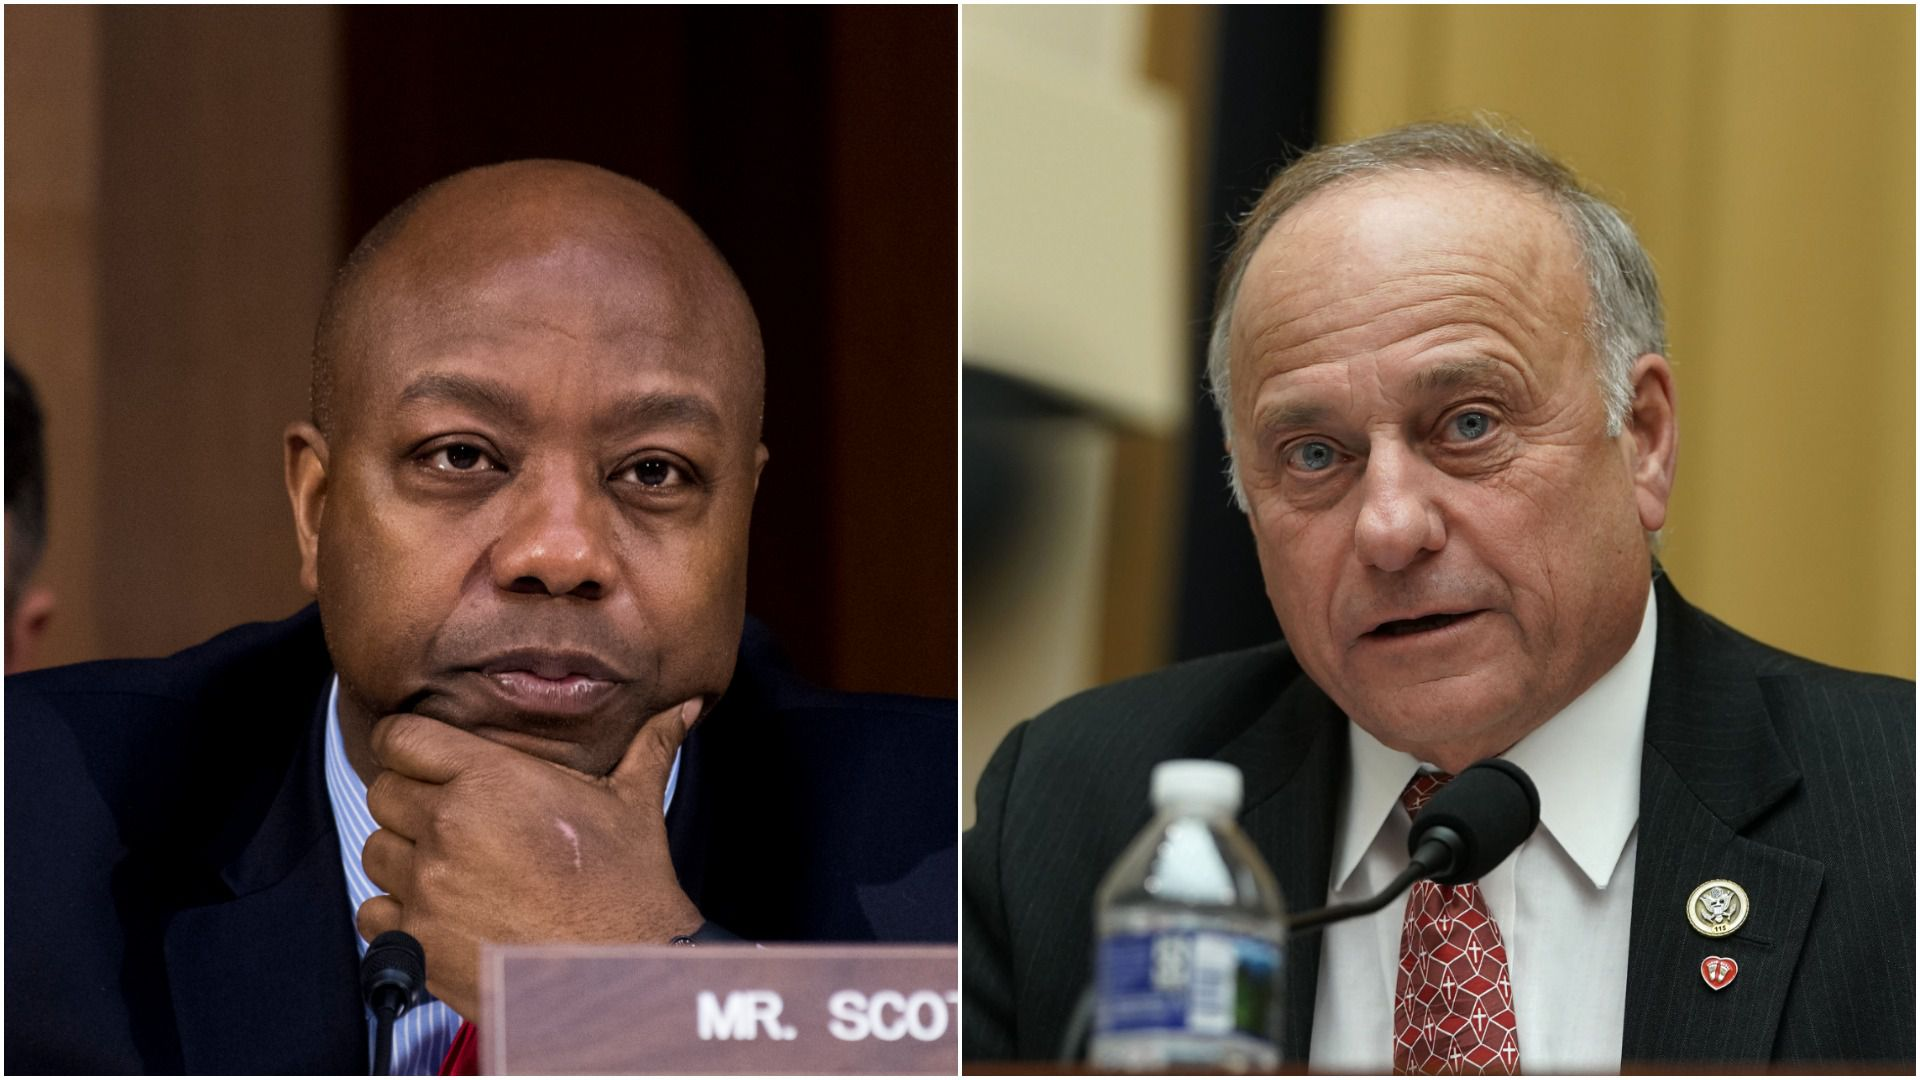 Tim Scott and Steve King